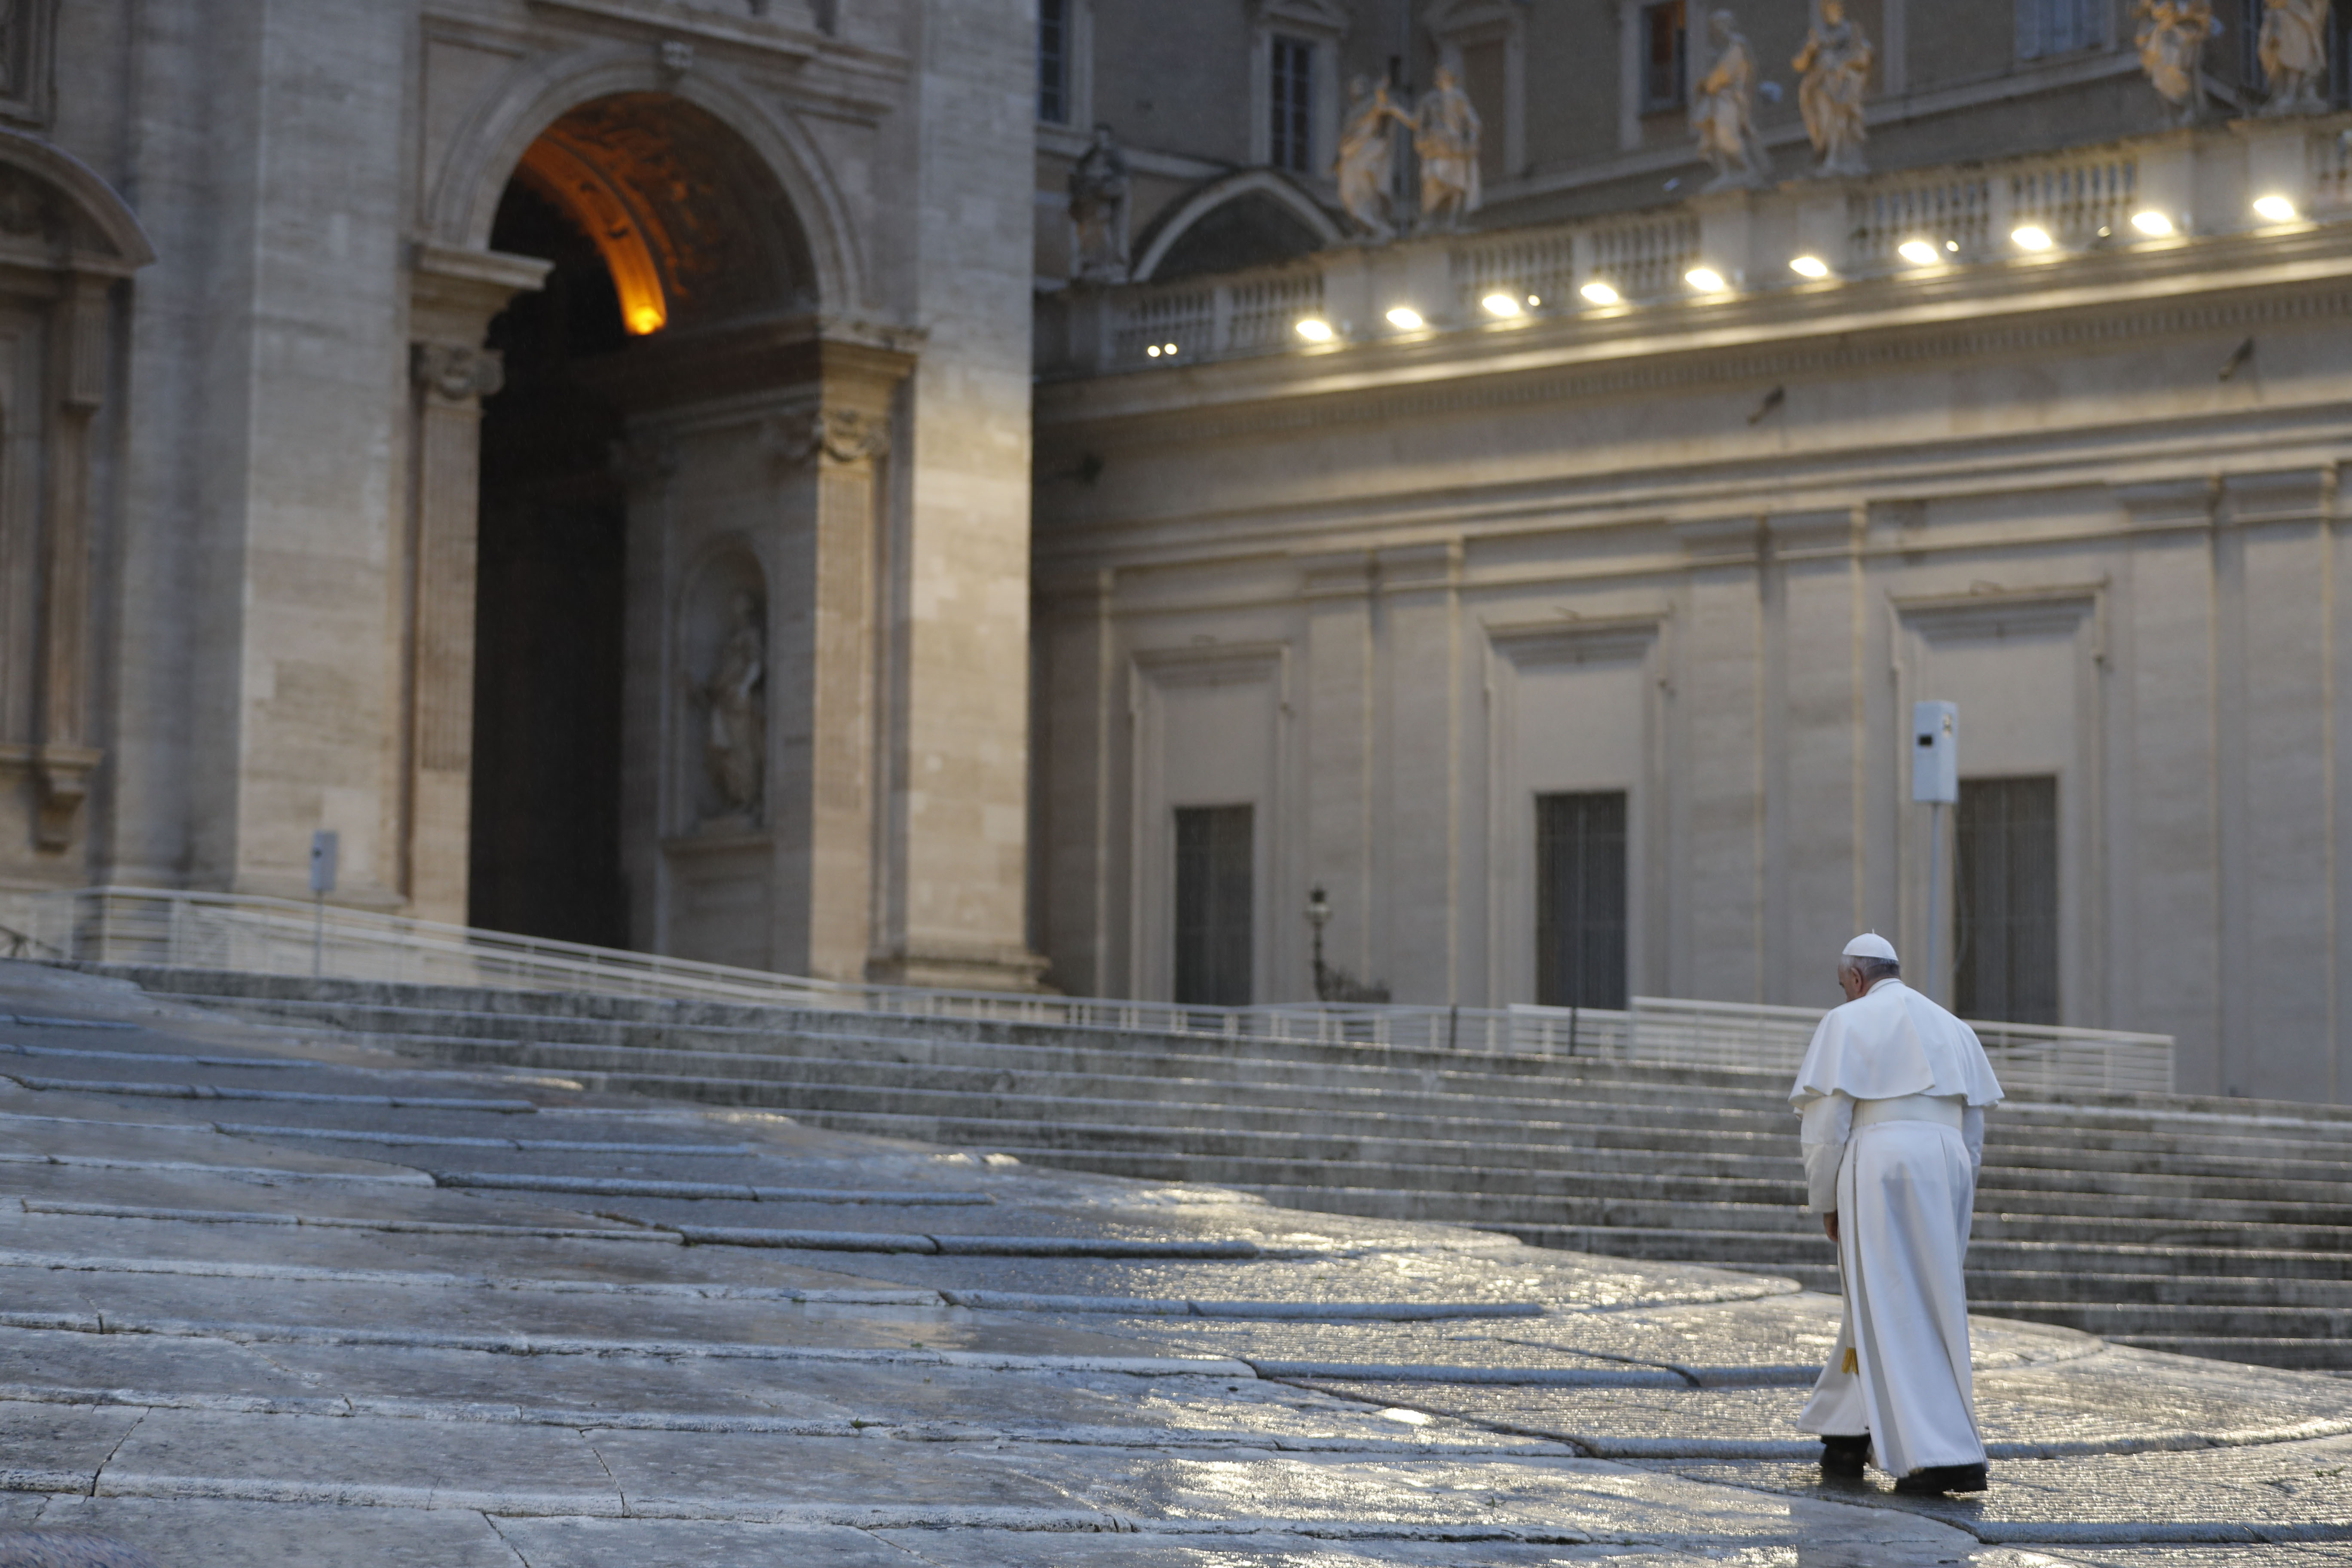 Pope Francis walks towards the platform to preside over a moment of prayer on the sagrato of St Peters Basilica. (Photo by YARA NARDI/POOL/AFP via Getty Images)